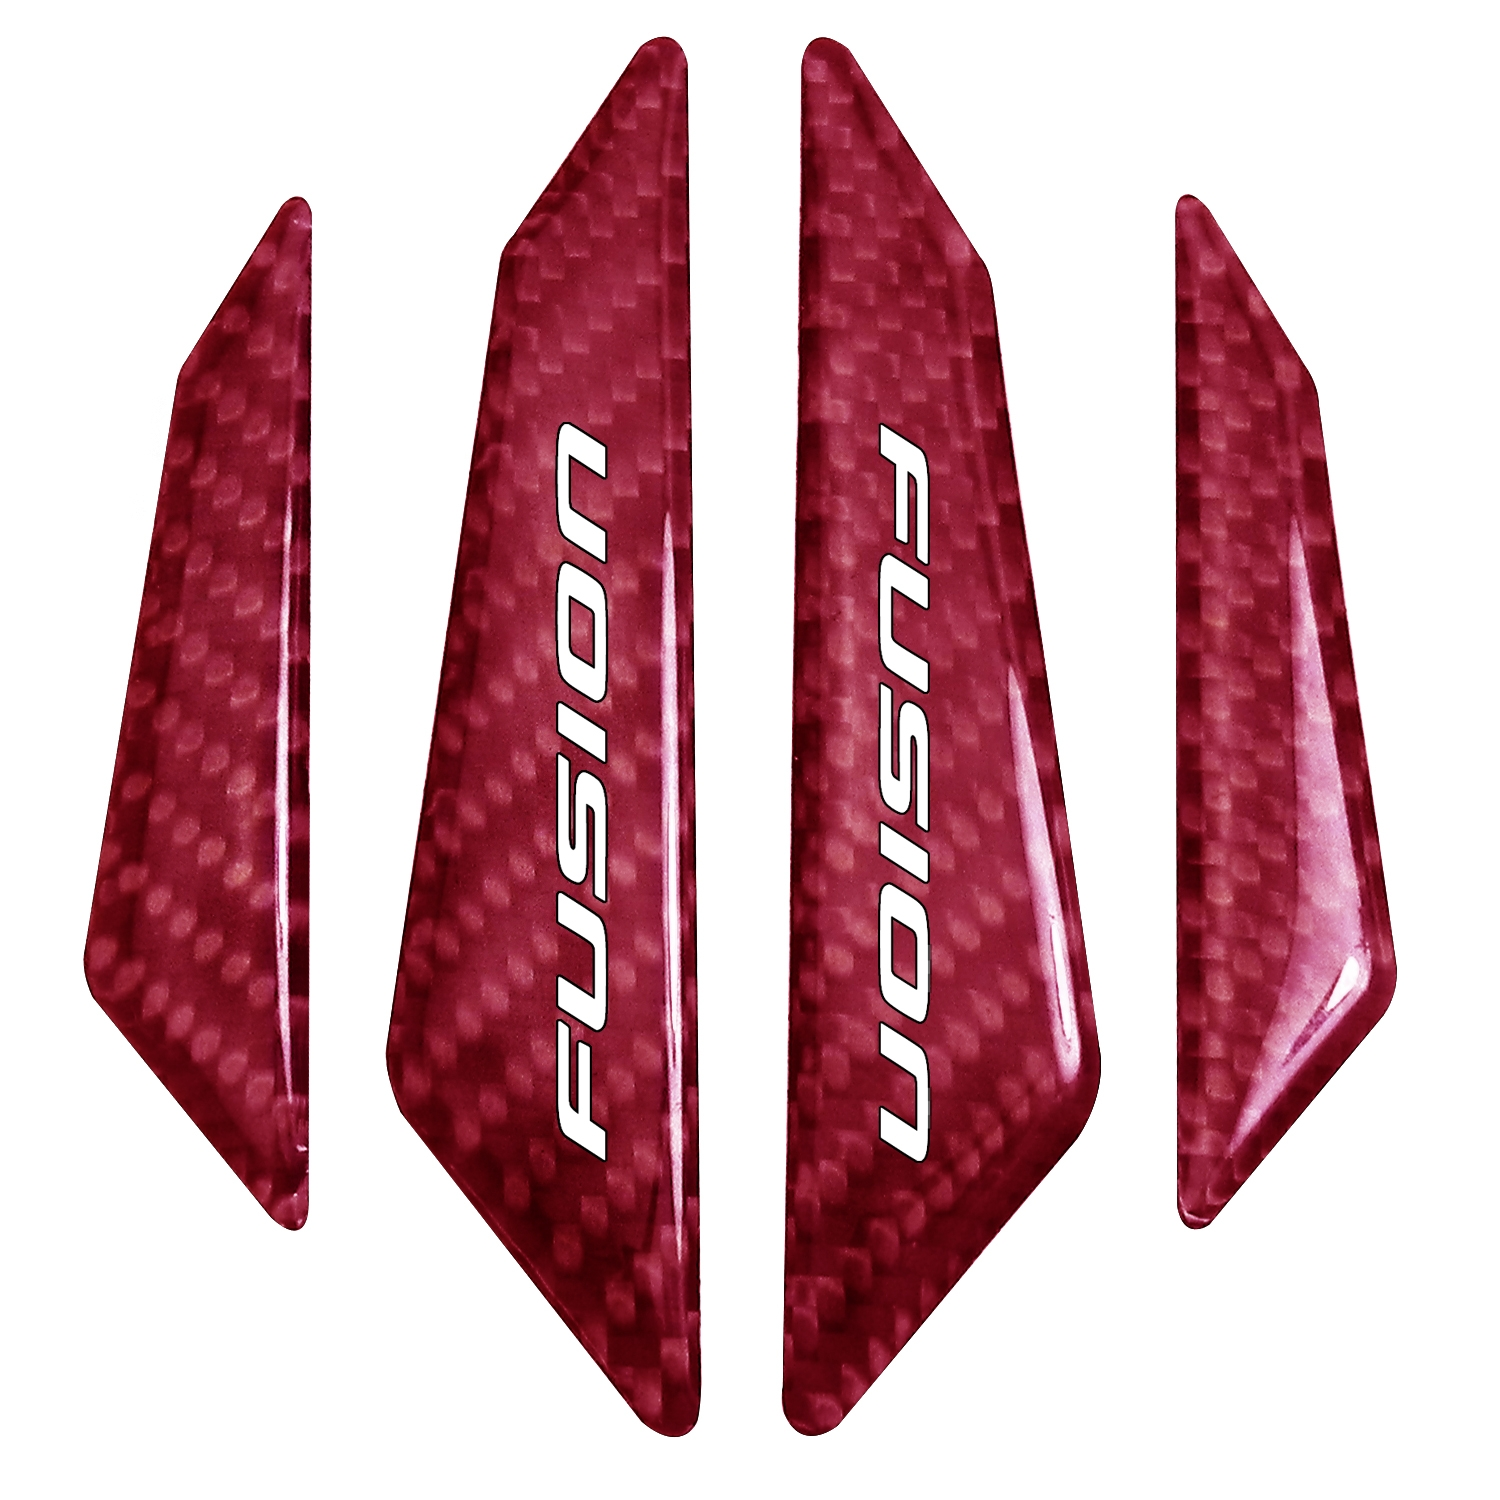 Ford Fusion Real Red Carbon Fiber Door Edge Guard Decal